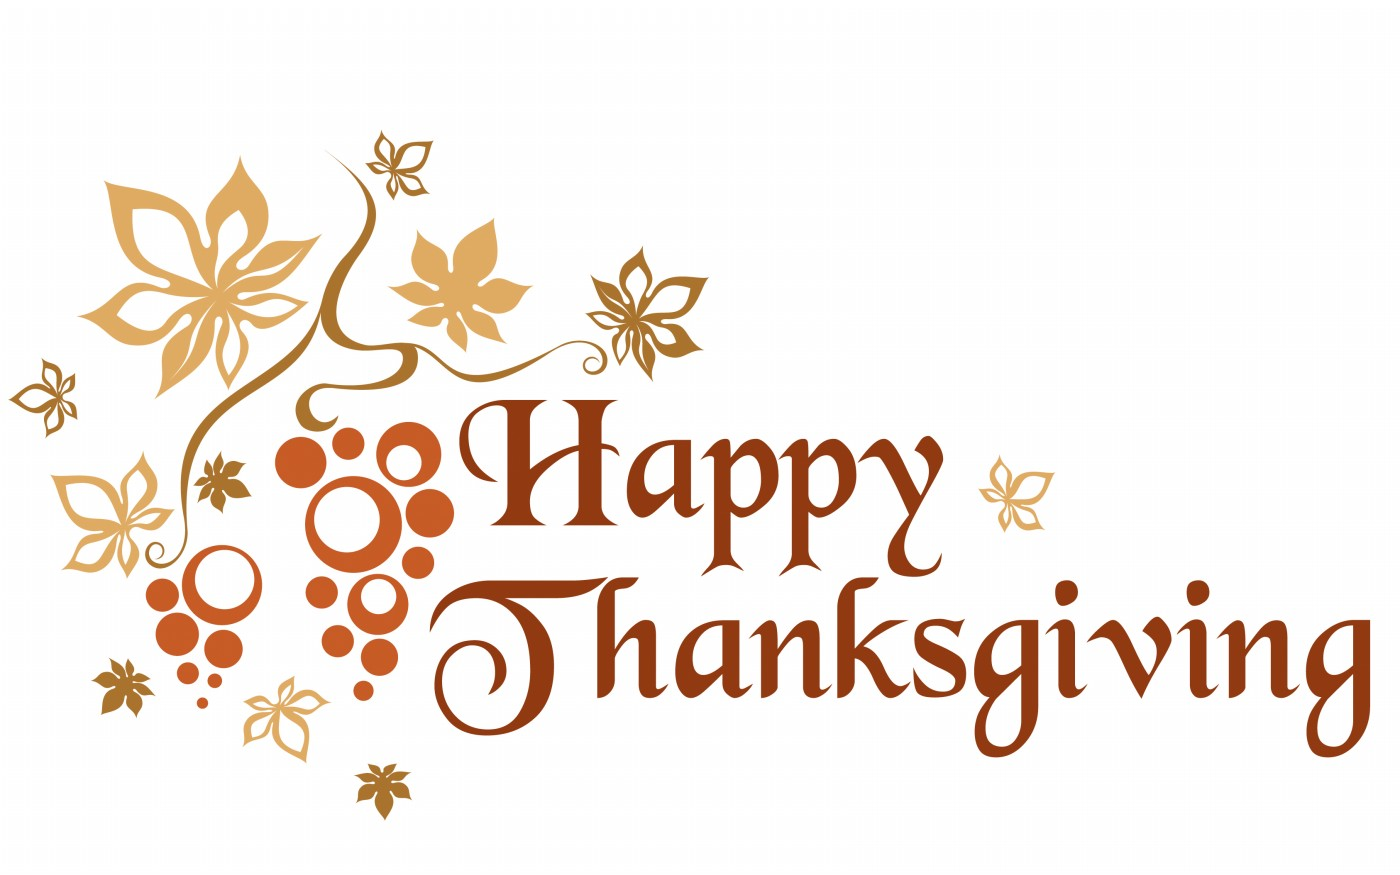 thanksgiving greeting words - Acur.lunamedia.co